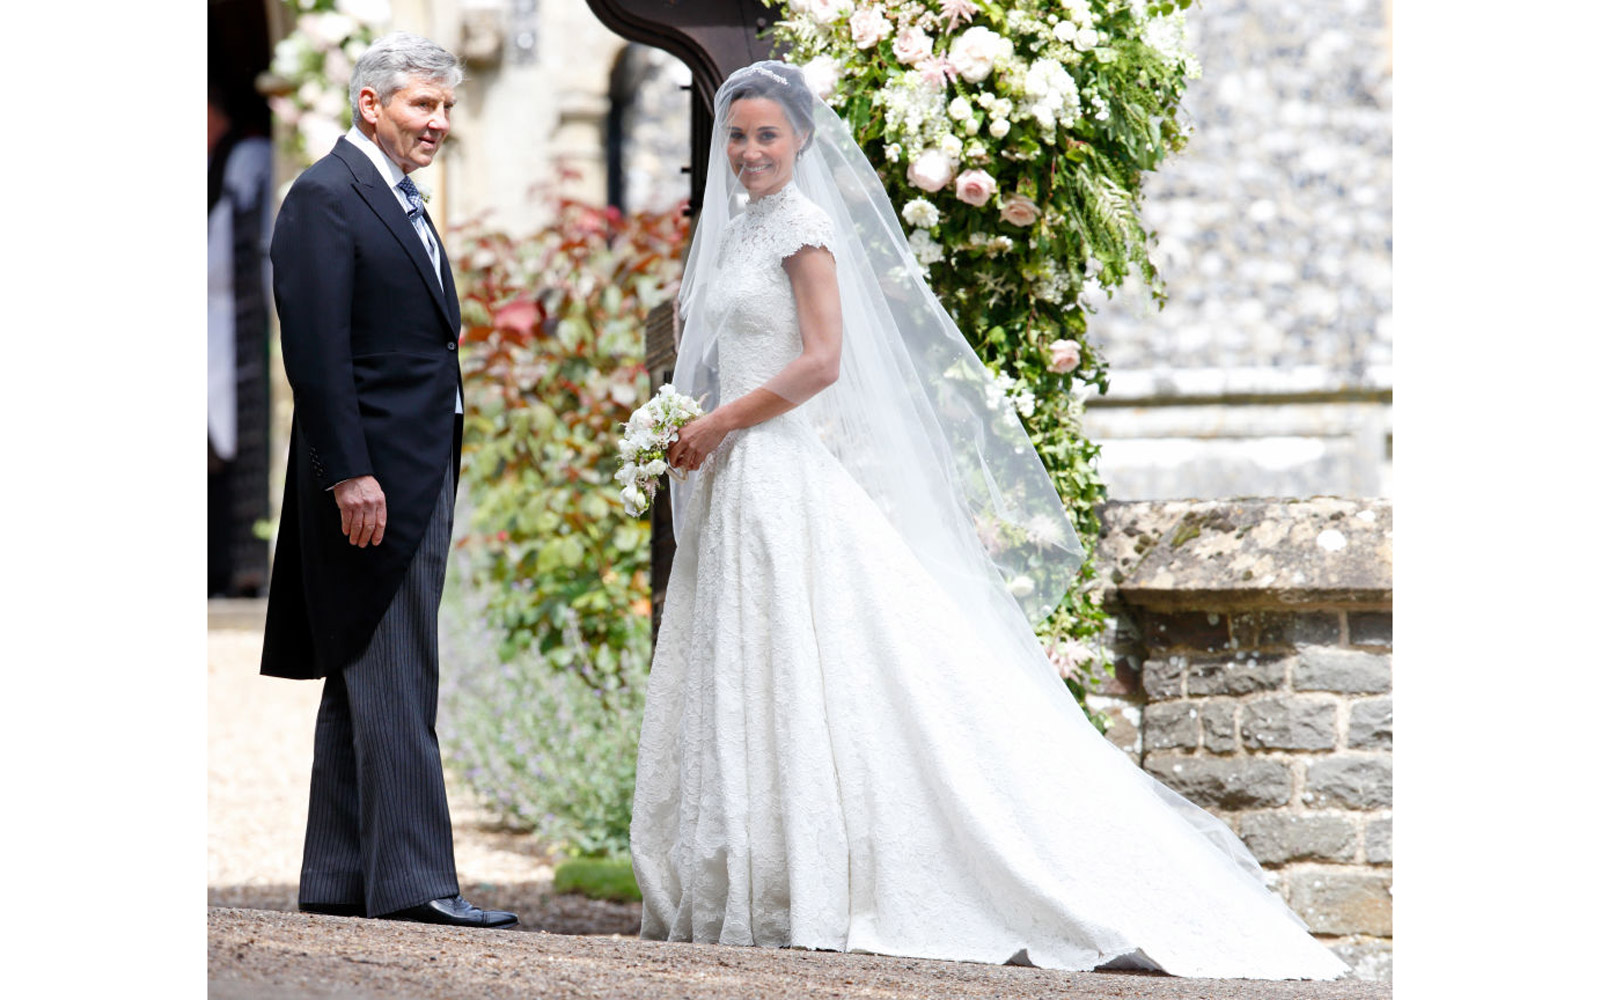 ENGLEFIELD GREEN, UNITED KINGDOM - MAY 20: (EMBARGOED FOR PUBLICATION IN UK NEWSPAPERS UNTIL 48 HOURS AFTER CREATE DATE AND TIME) Michael Middleton and Pippa Middleton arrive at St Mark's Church for her wedding on May 20, 2017 in Englefield Green, England